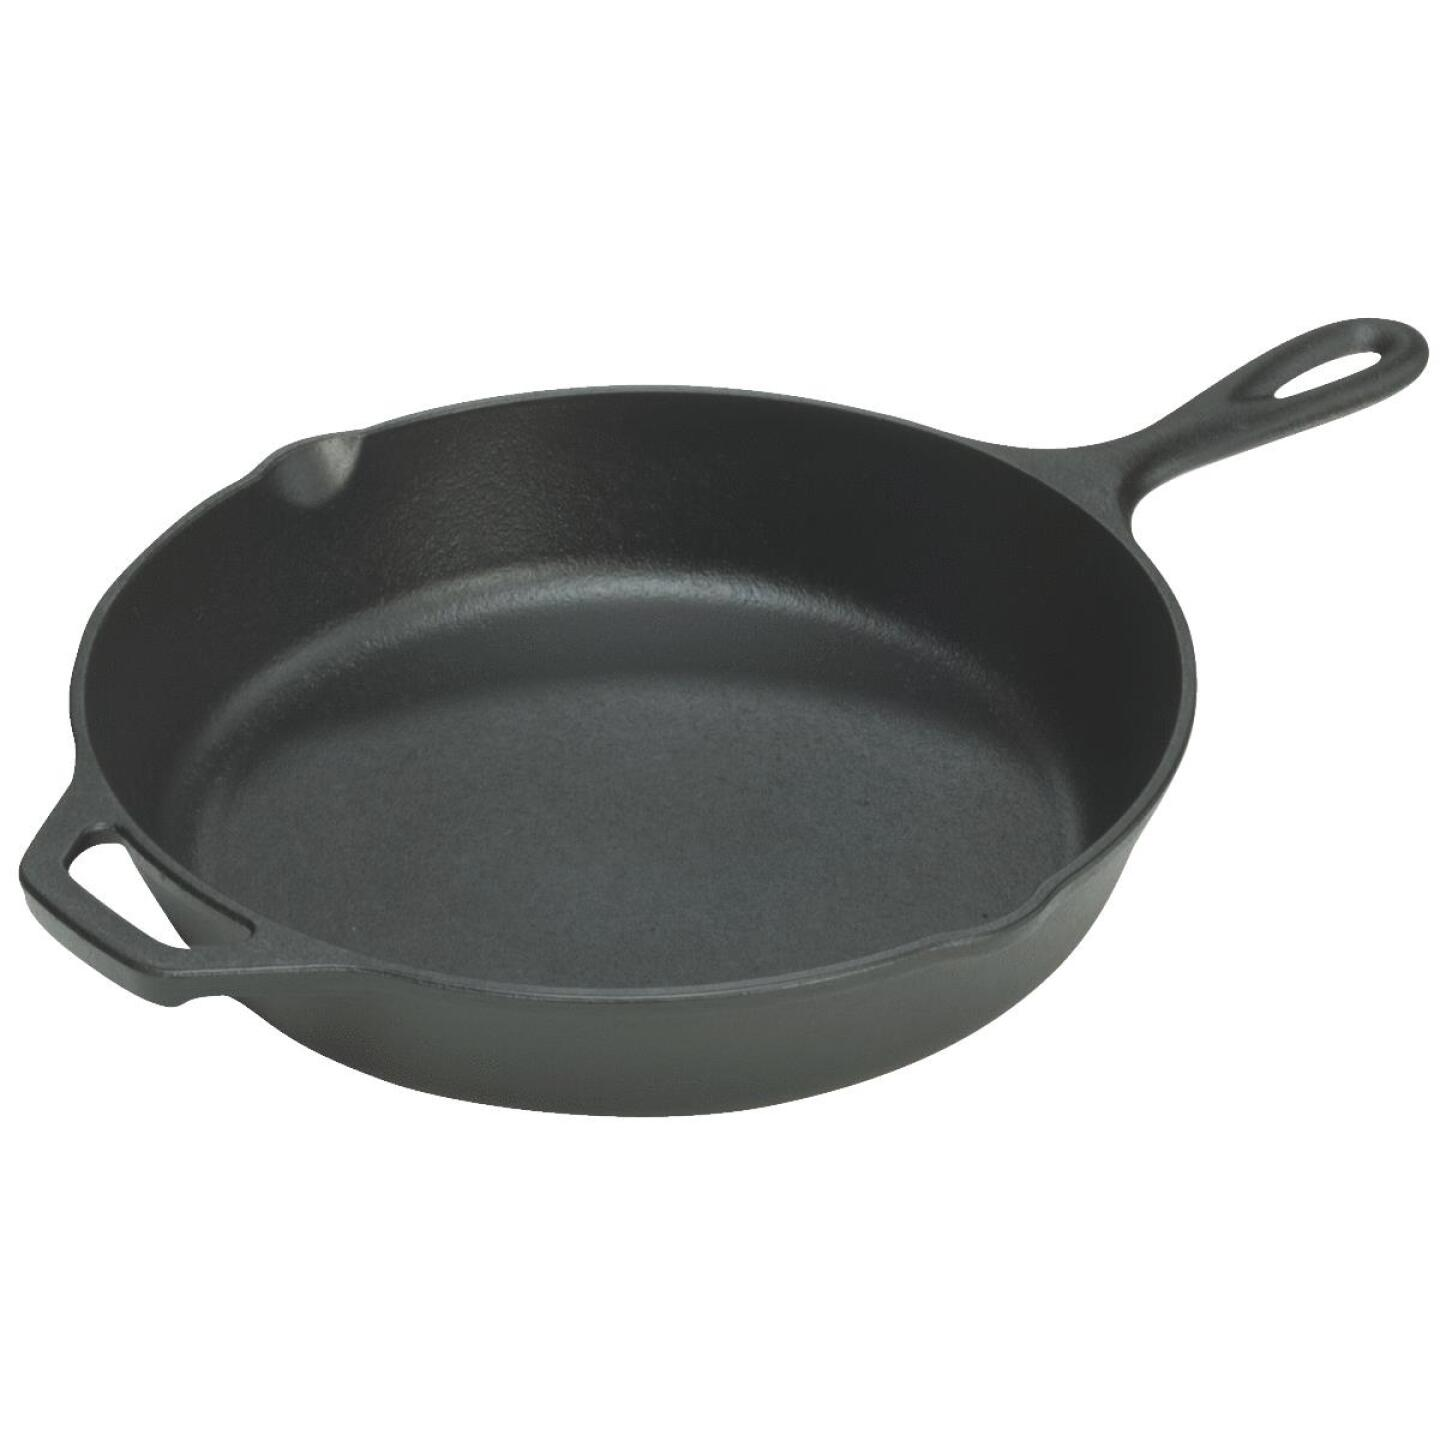 Lodge 13-1/4 In. Cast Iron Skillet with Assist Handle Image 1